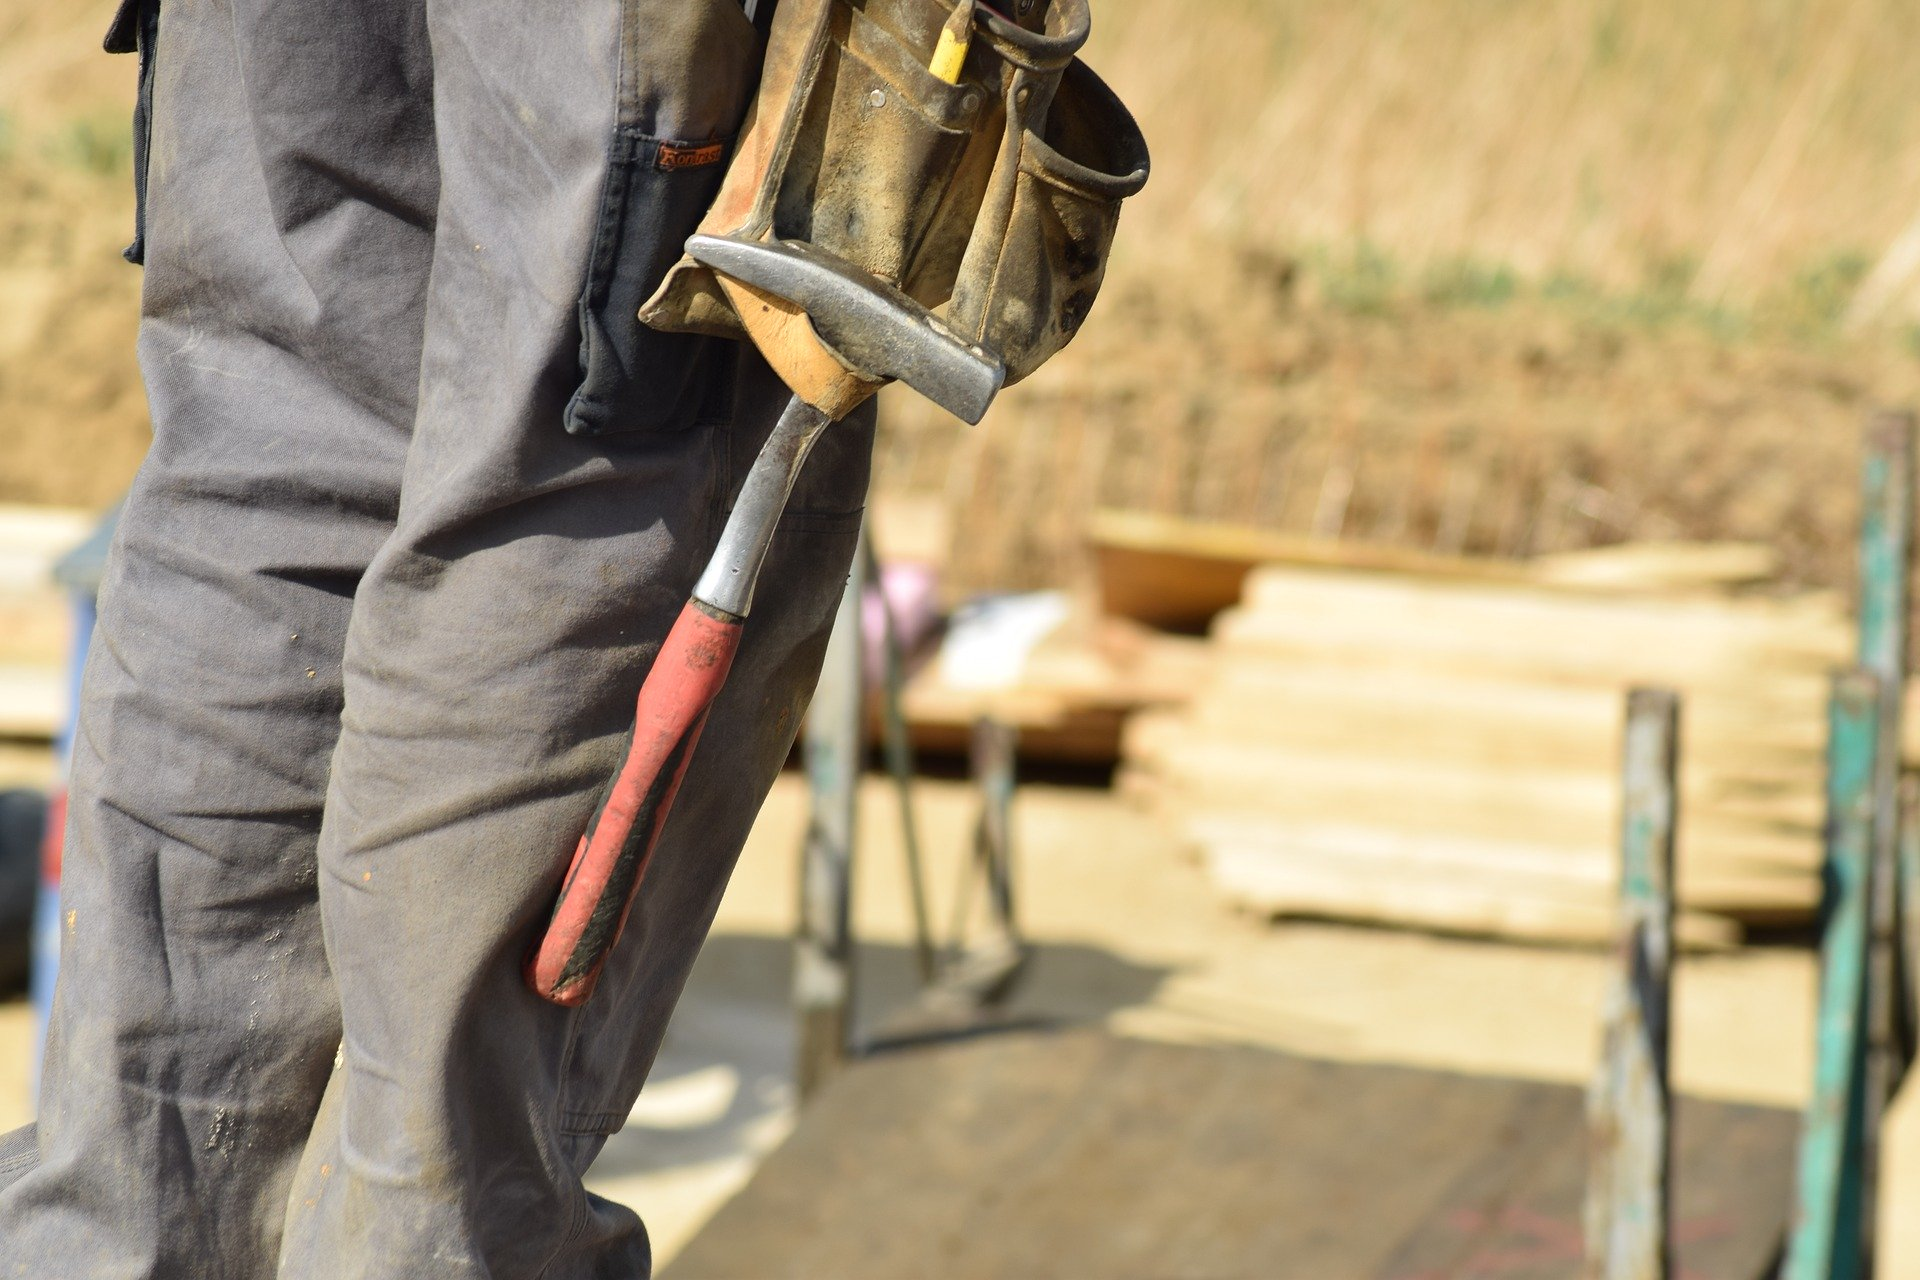 PCIAW | PCIAW News | Ontario launches construction site safety blitz